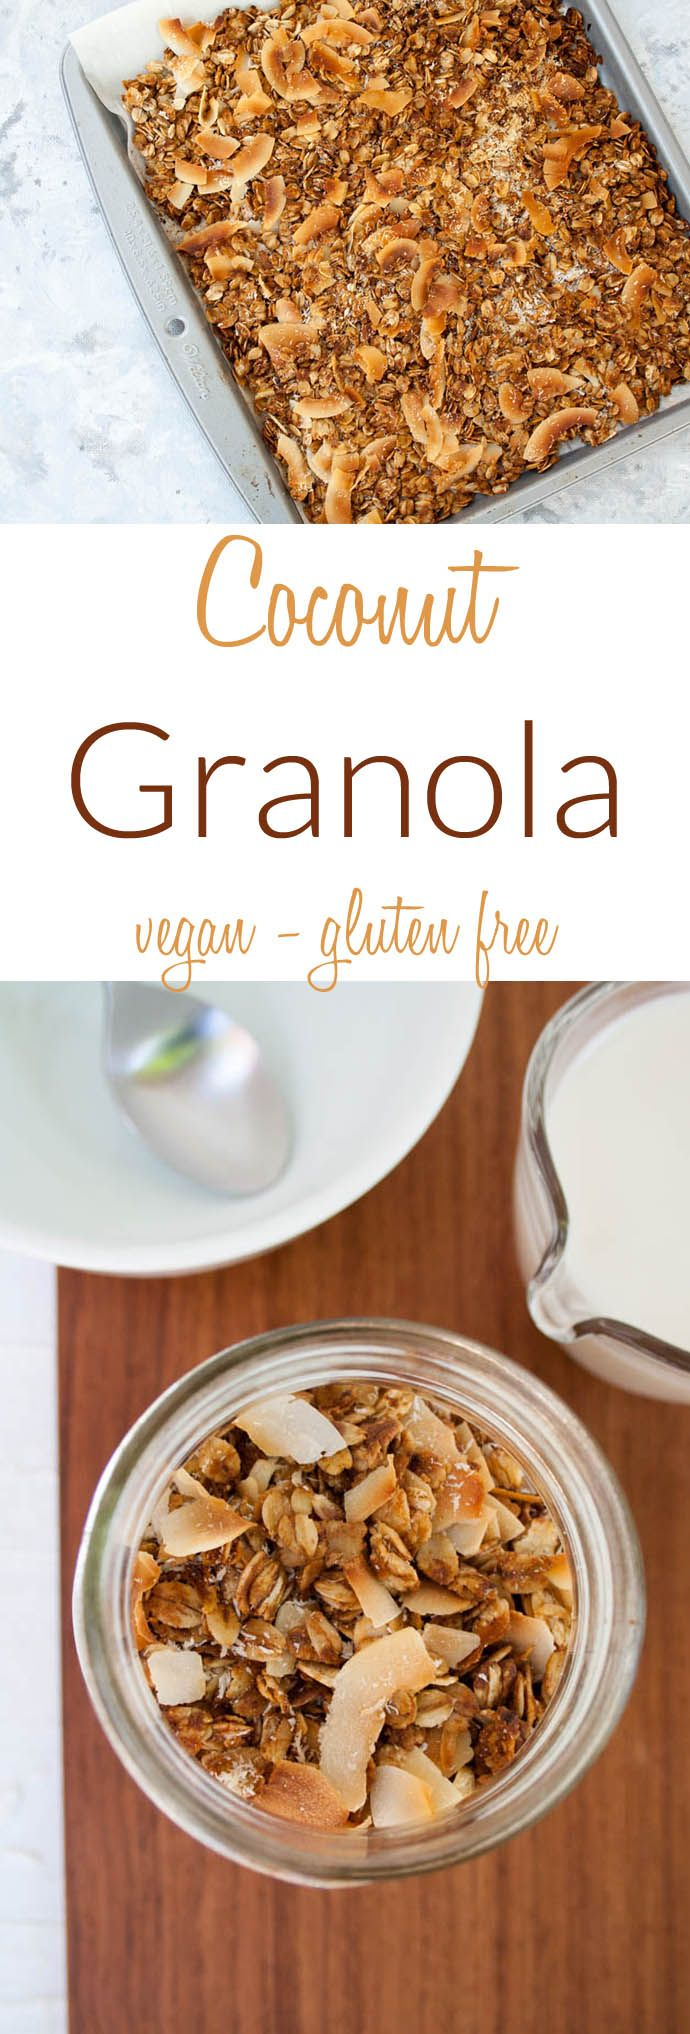 Coconut Granola (vegan, gluten free) - This recipe will whisk you away to the tropics! It is packed with coconut flavor, is easy to make and cheaper than store bought!